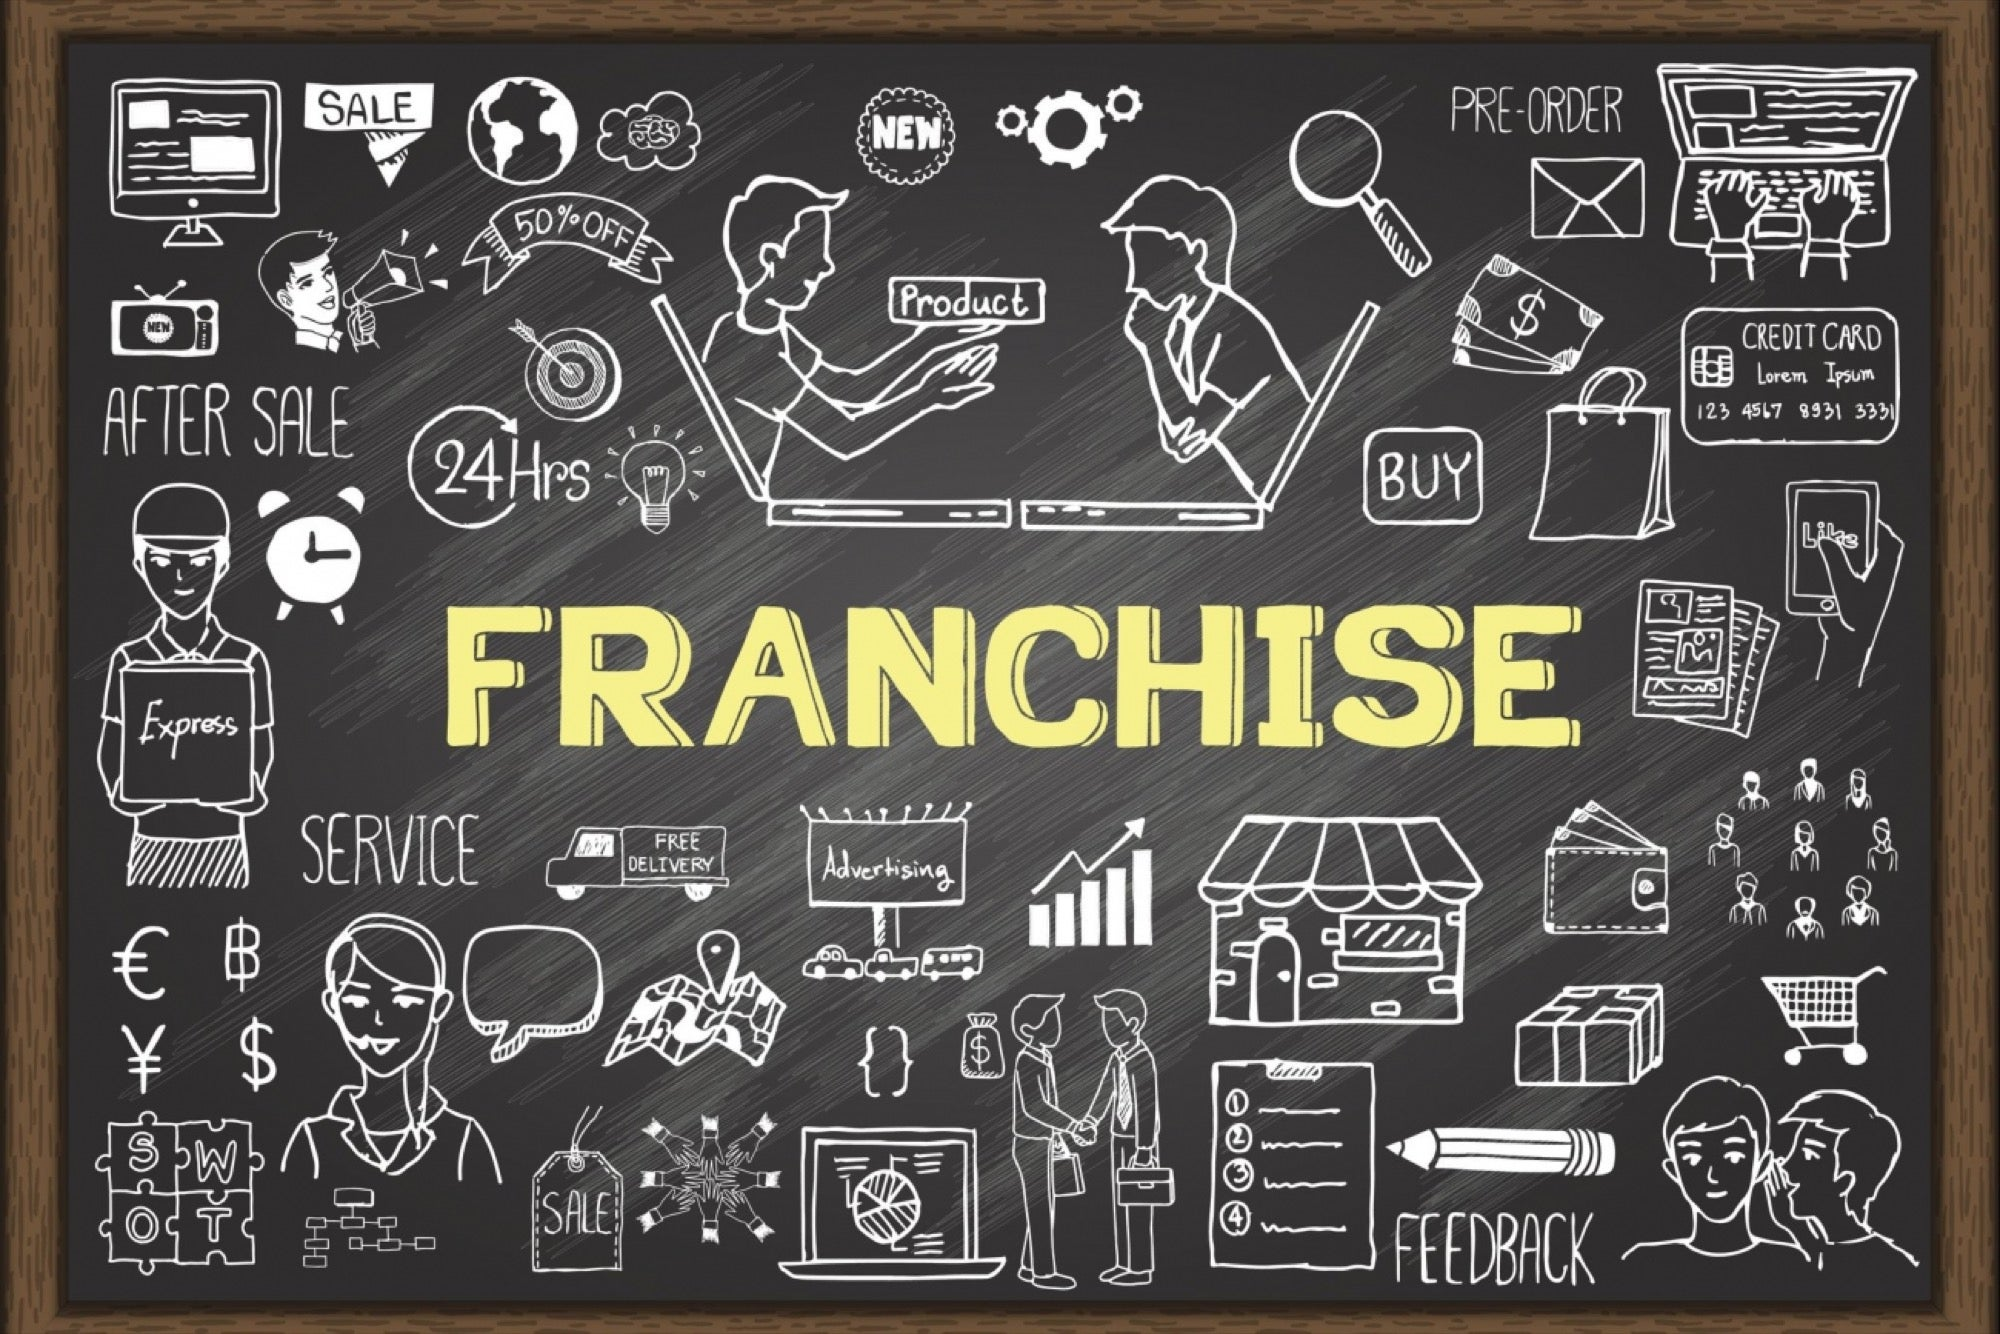 24 top ranked, affordable franchises you can buy for $25,000 or less